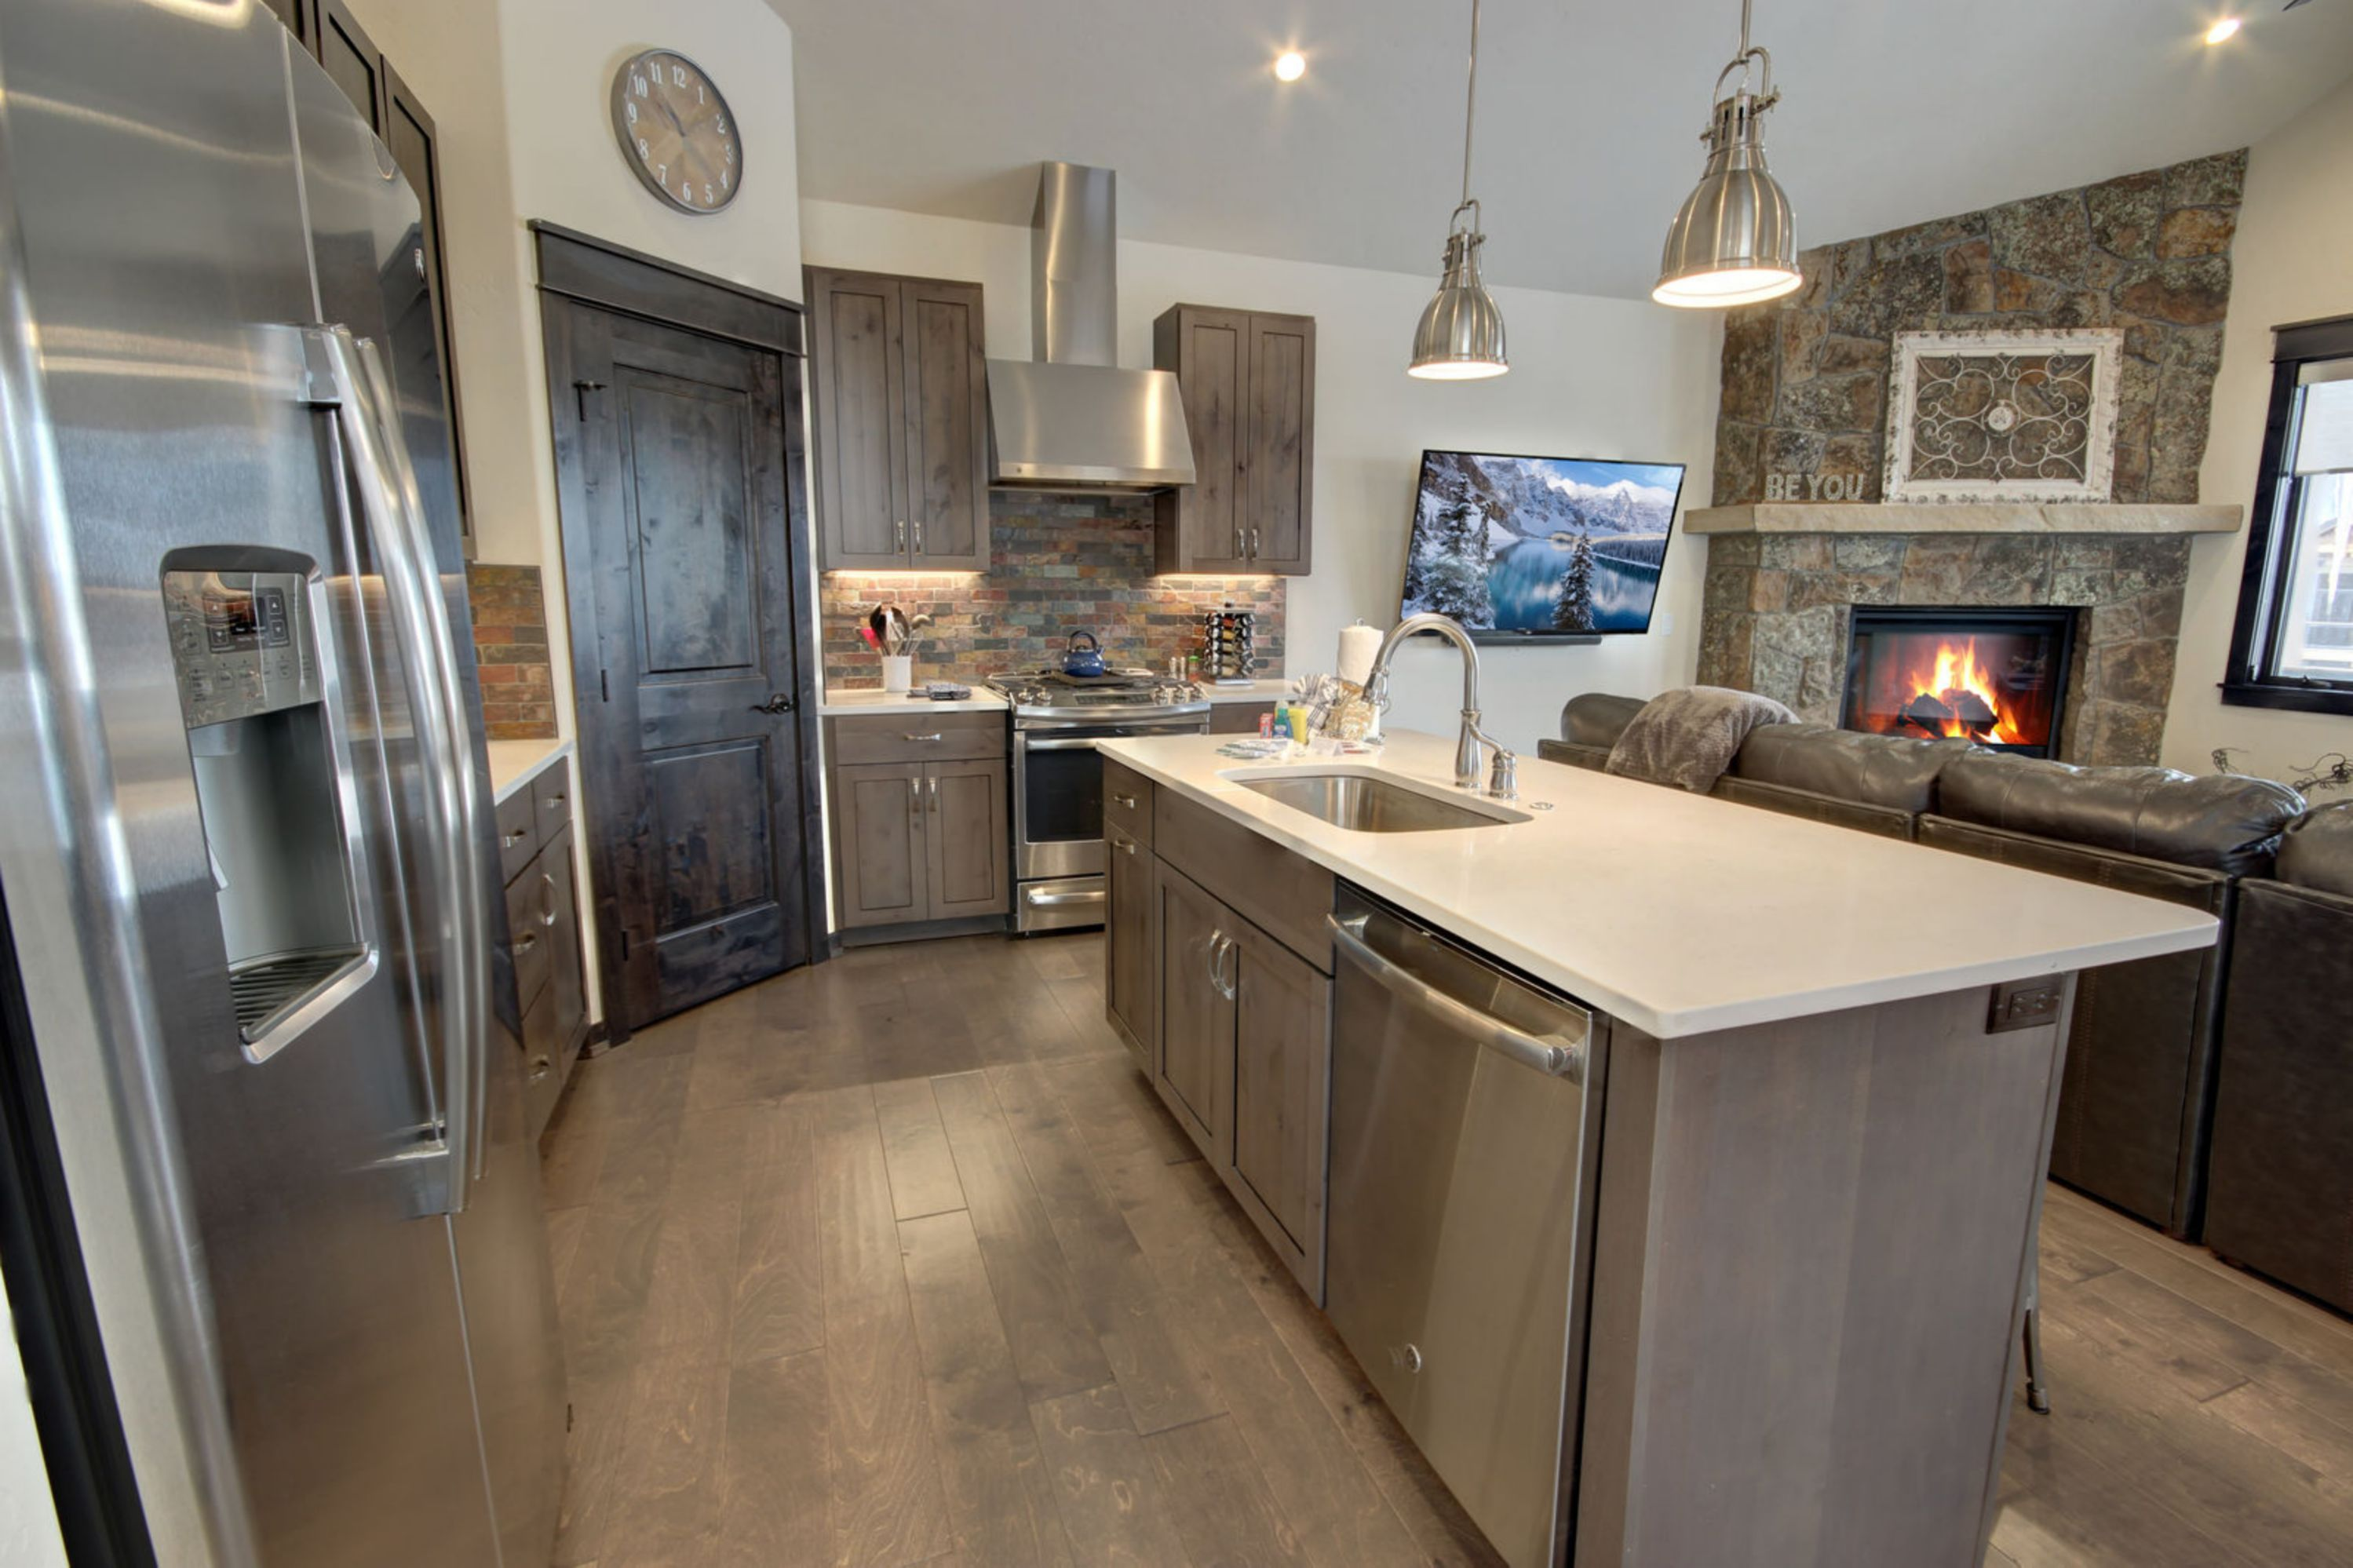 Kitchen with space to make great meals